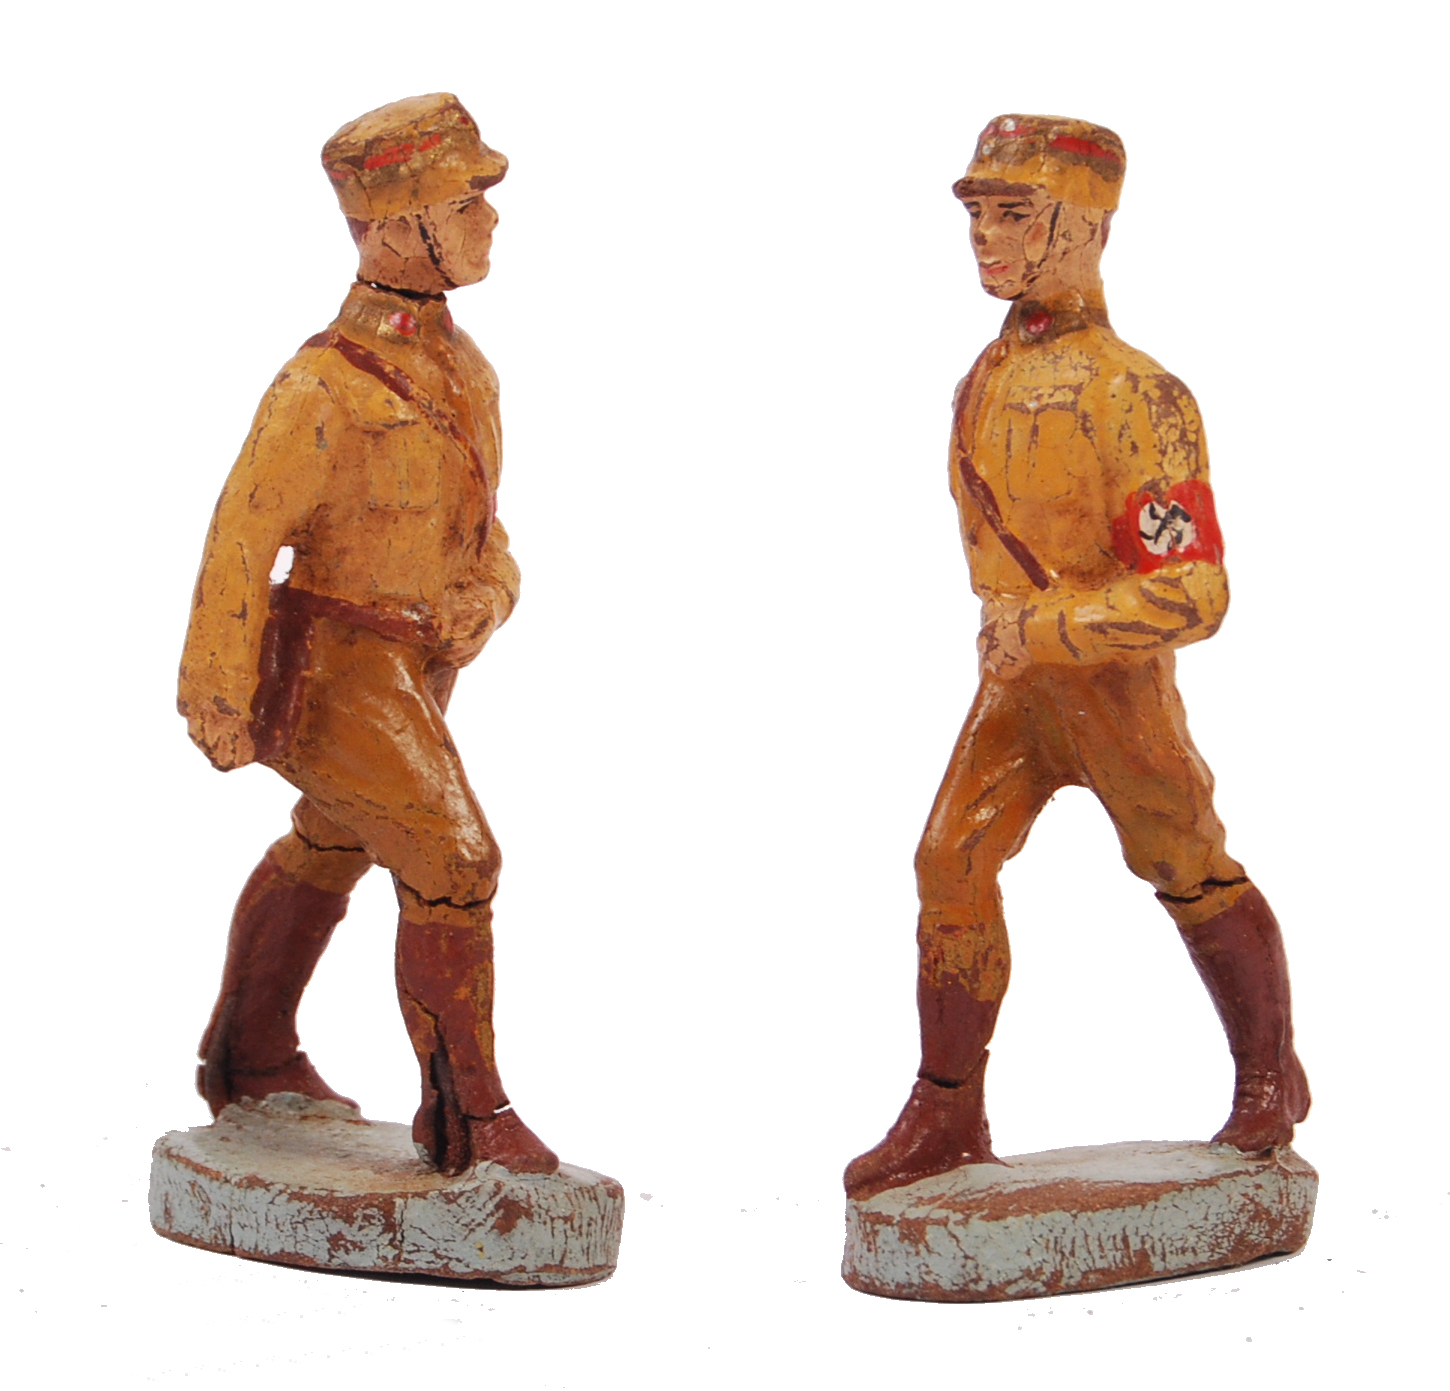 RARE ANTIQUE GERMAN NAZI PARTY BROWNSHIRT ELASTOLIN FIGURES